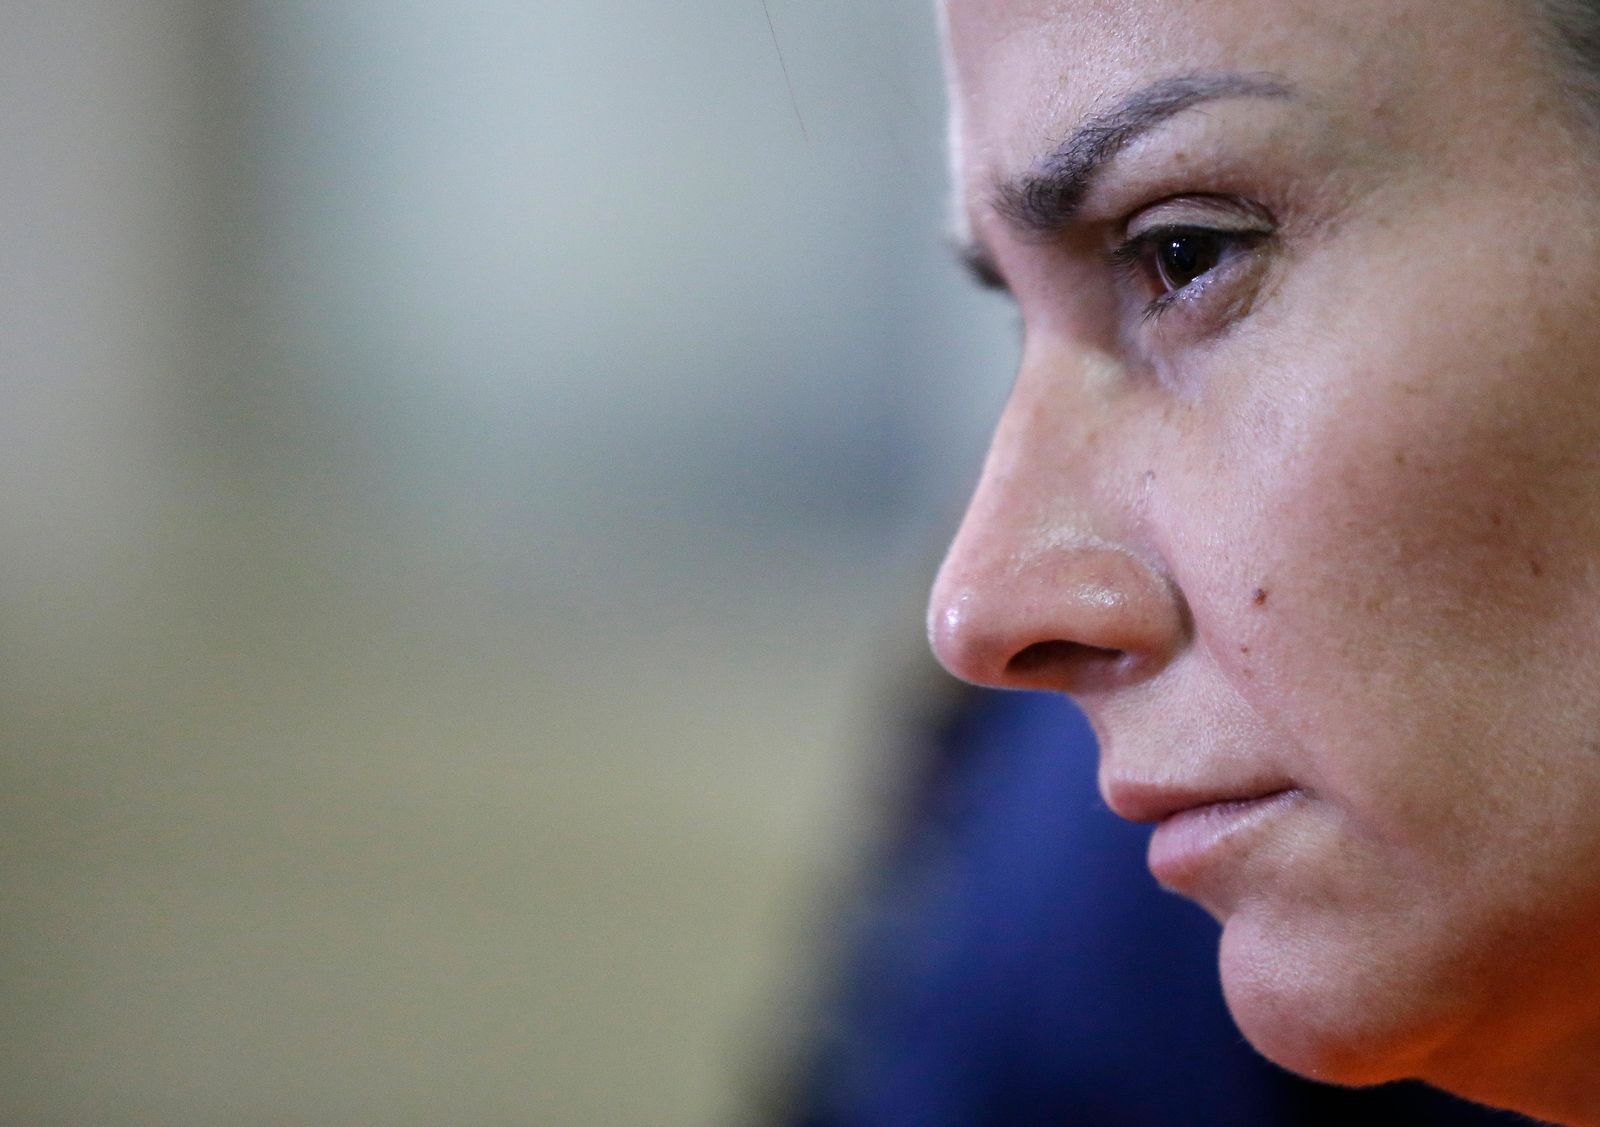 Arrested American Jennifer Erin Talbot from Ohio watches during a press conference by the National Bureau of Investigation (NBI) in Manila, Philippines on Thursday, Sept. 5, 2019. (AP Photo/Aaron Favila)